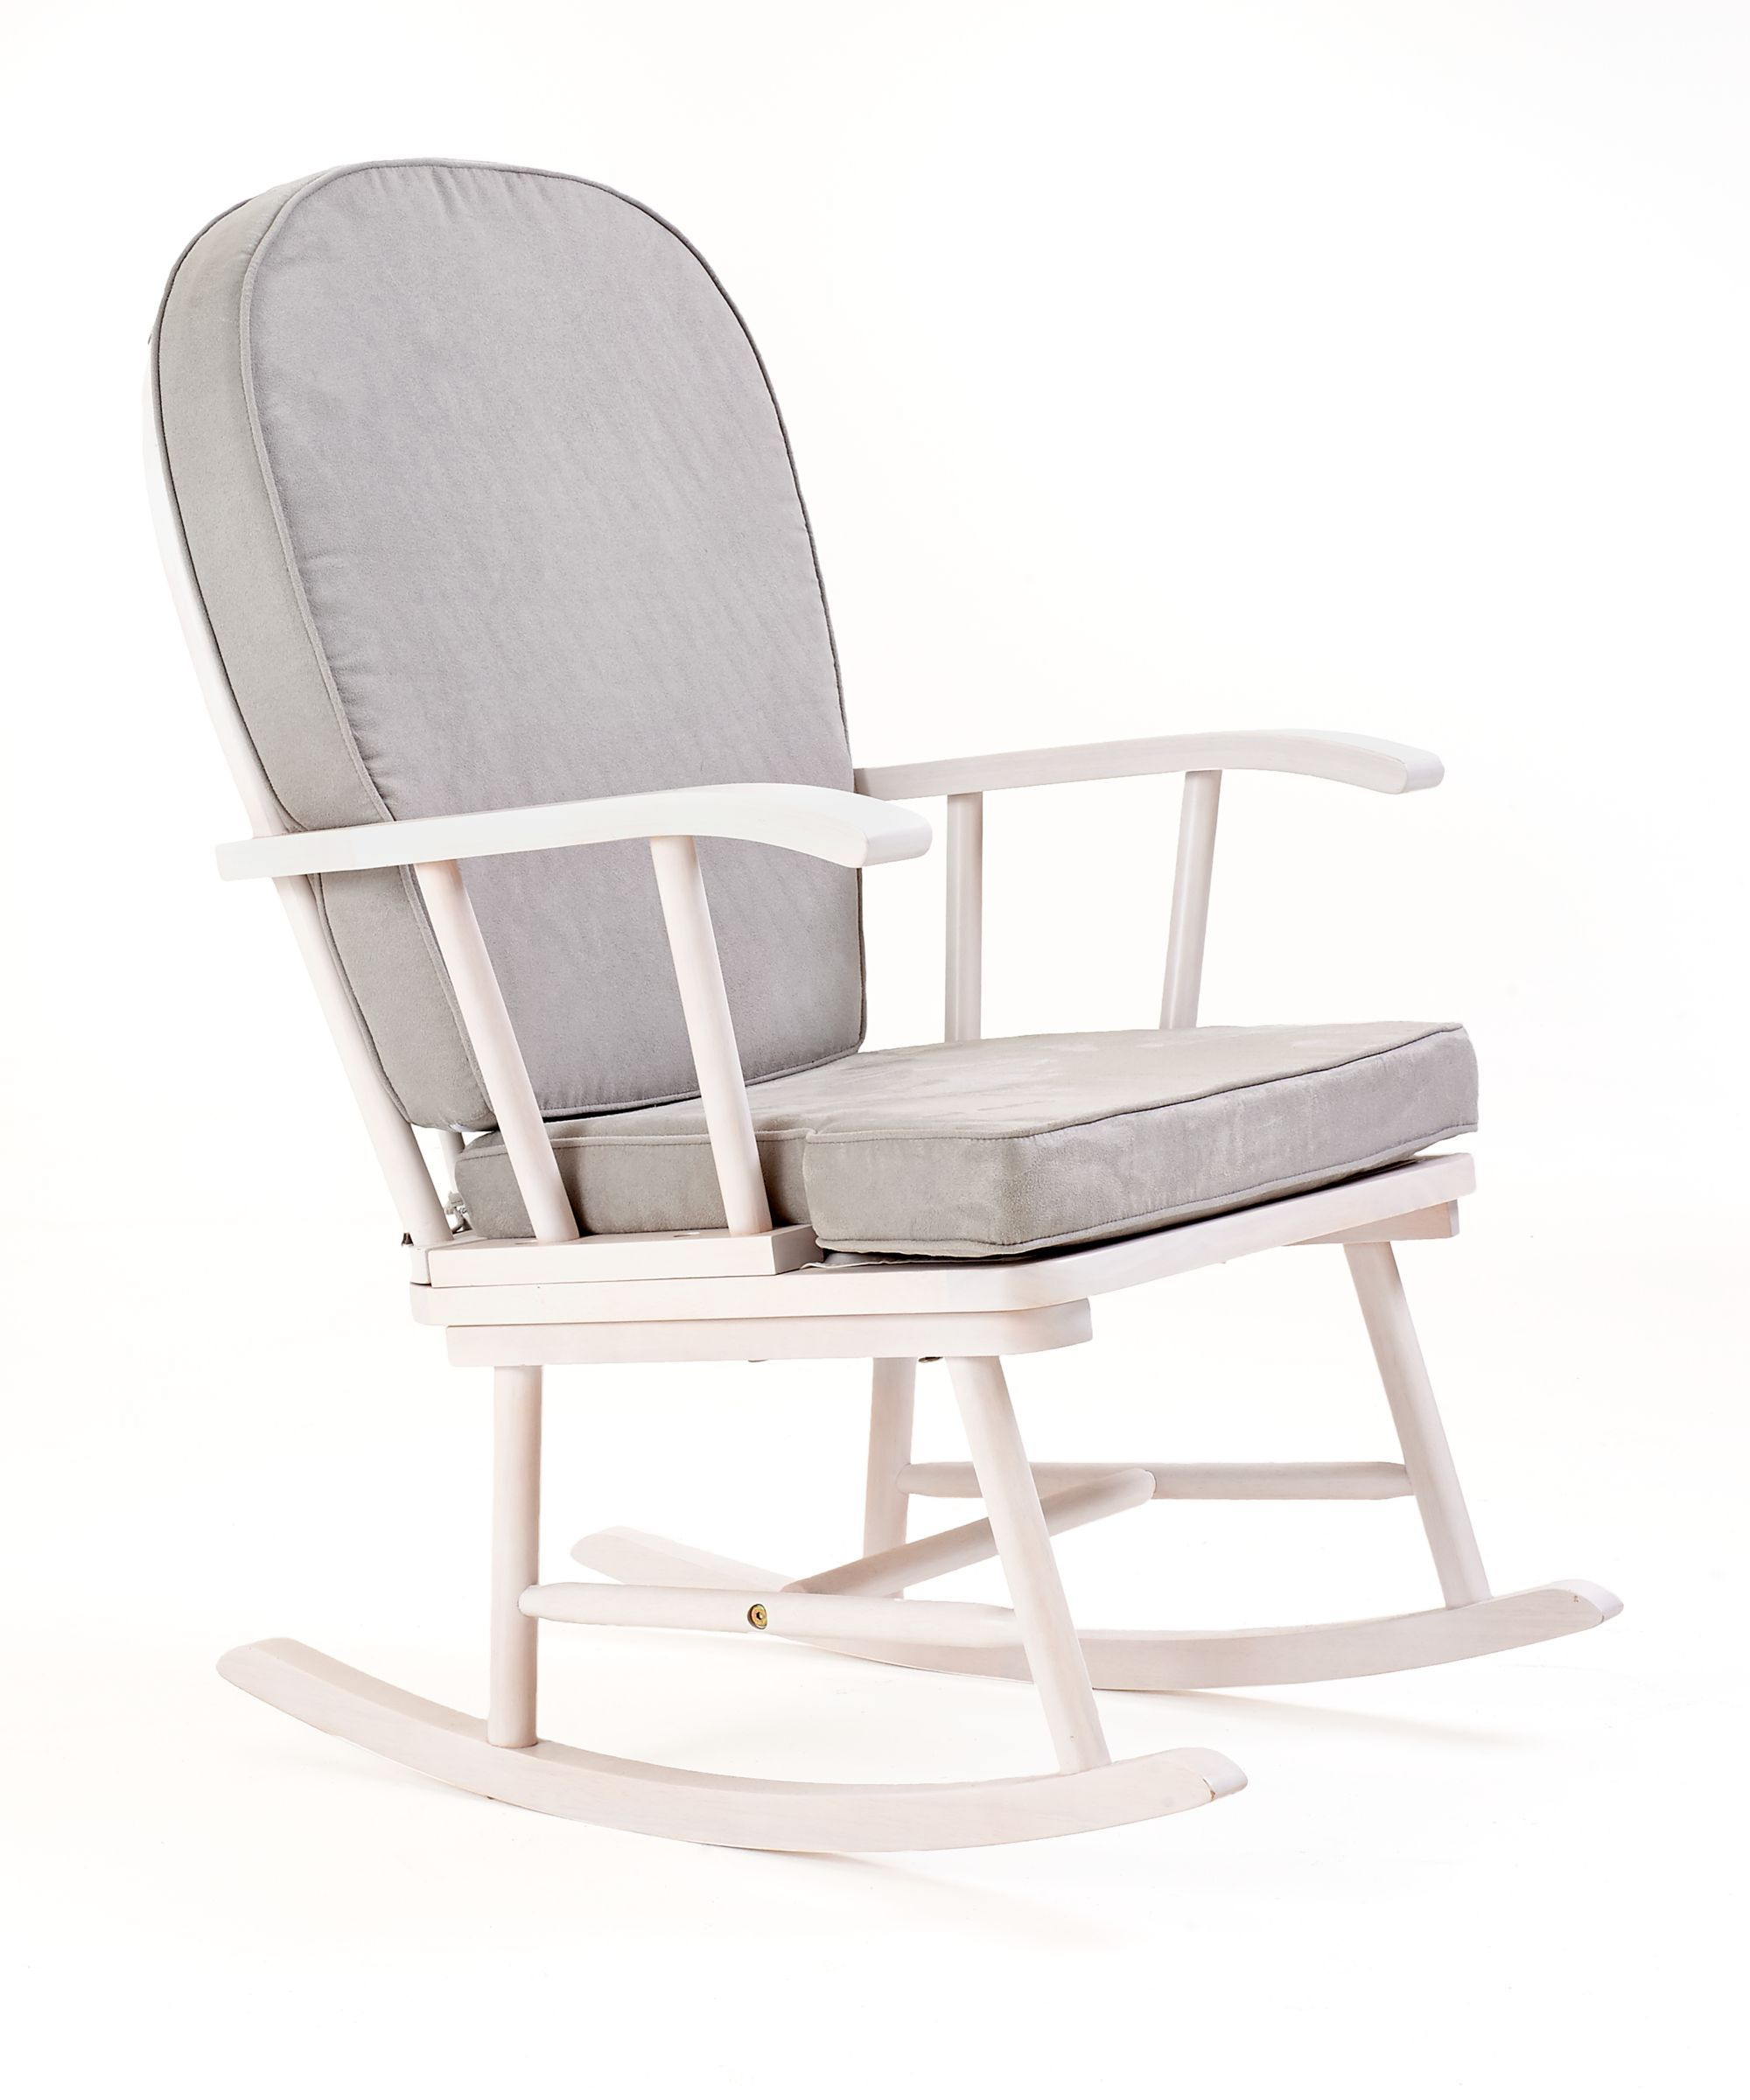 Grey Rocking Chair Mothercare Rocking Chair With Grey Cushion White Small